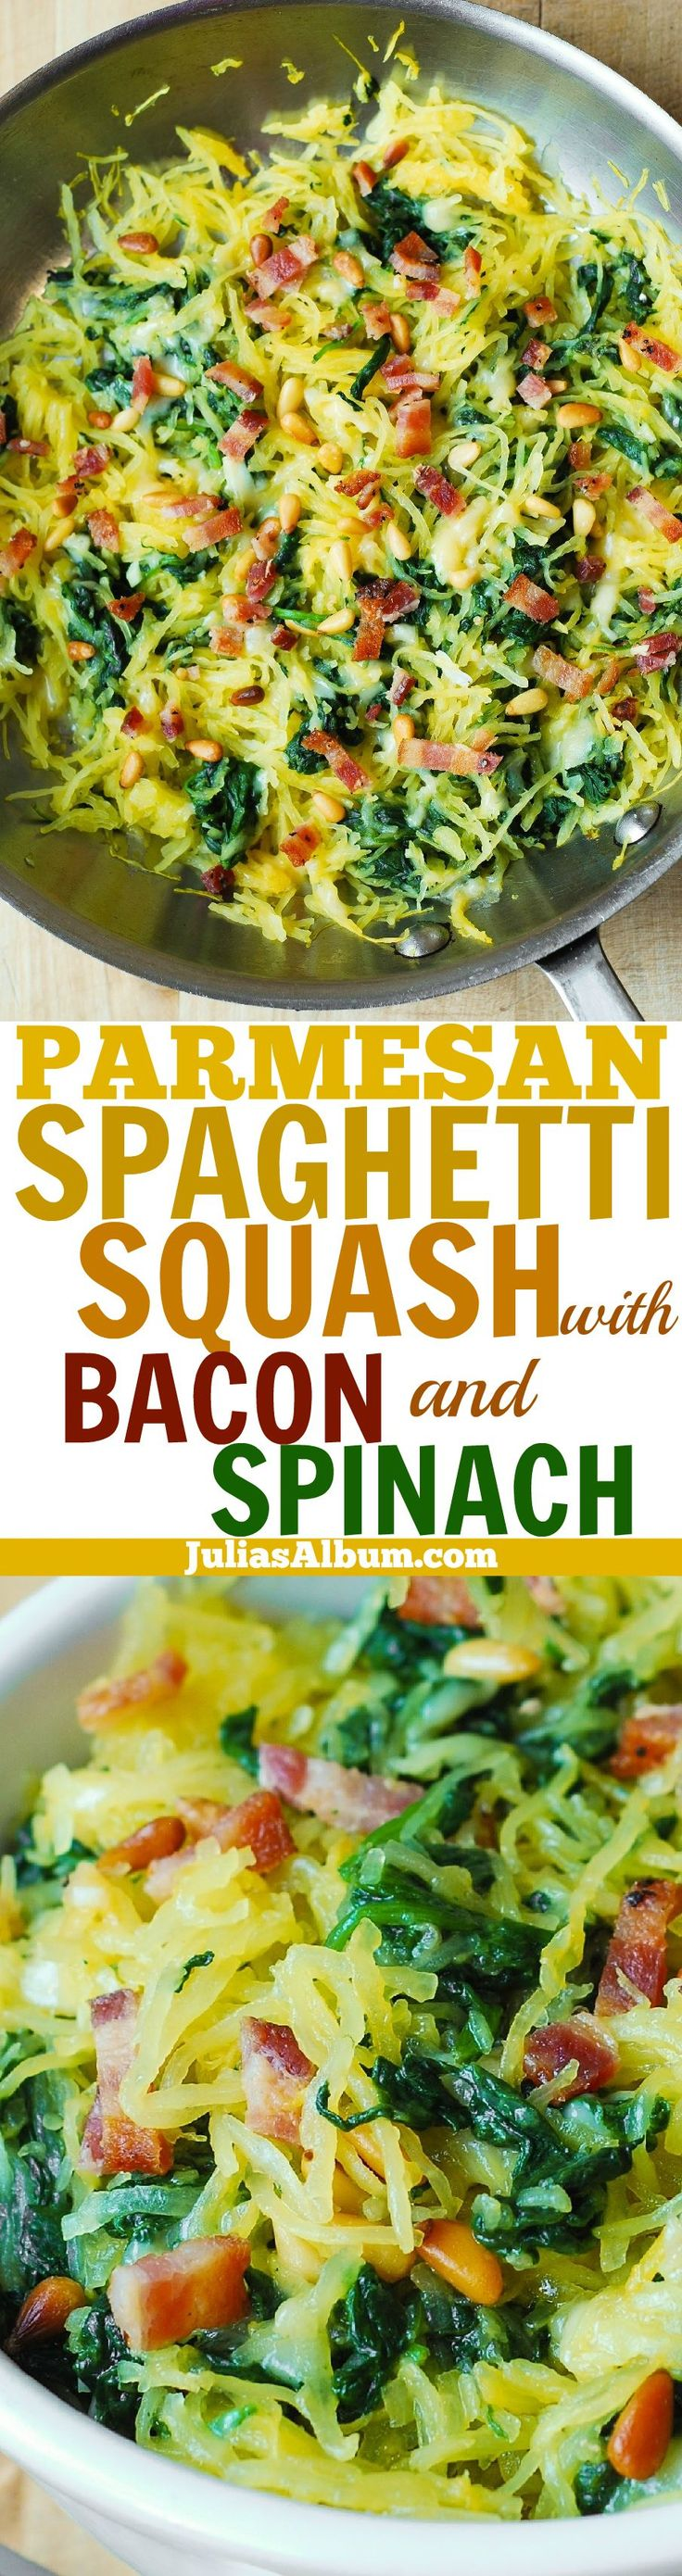 Garlic Spaghetti Squash, Spinach, and Bacon, + melted Parmesan cheese and toasted pine nuts. Delicious, healthy, gluten free! (Cheese Making Nutritional Yeast)